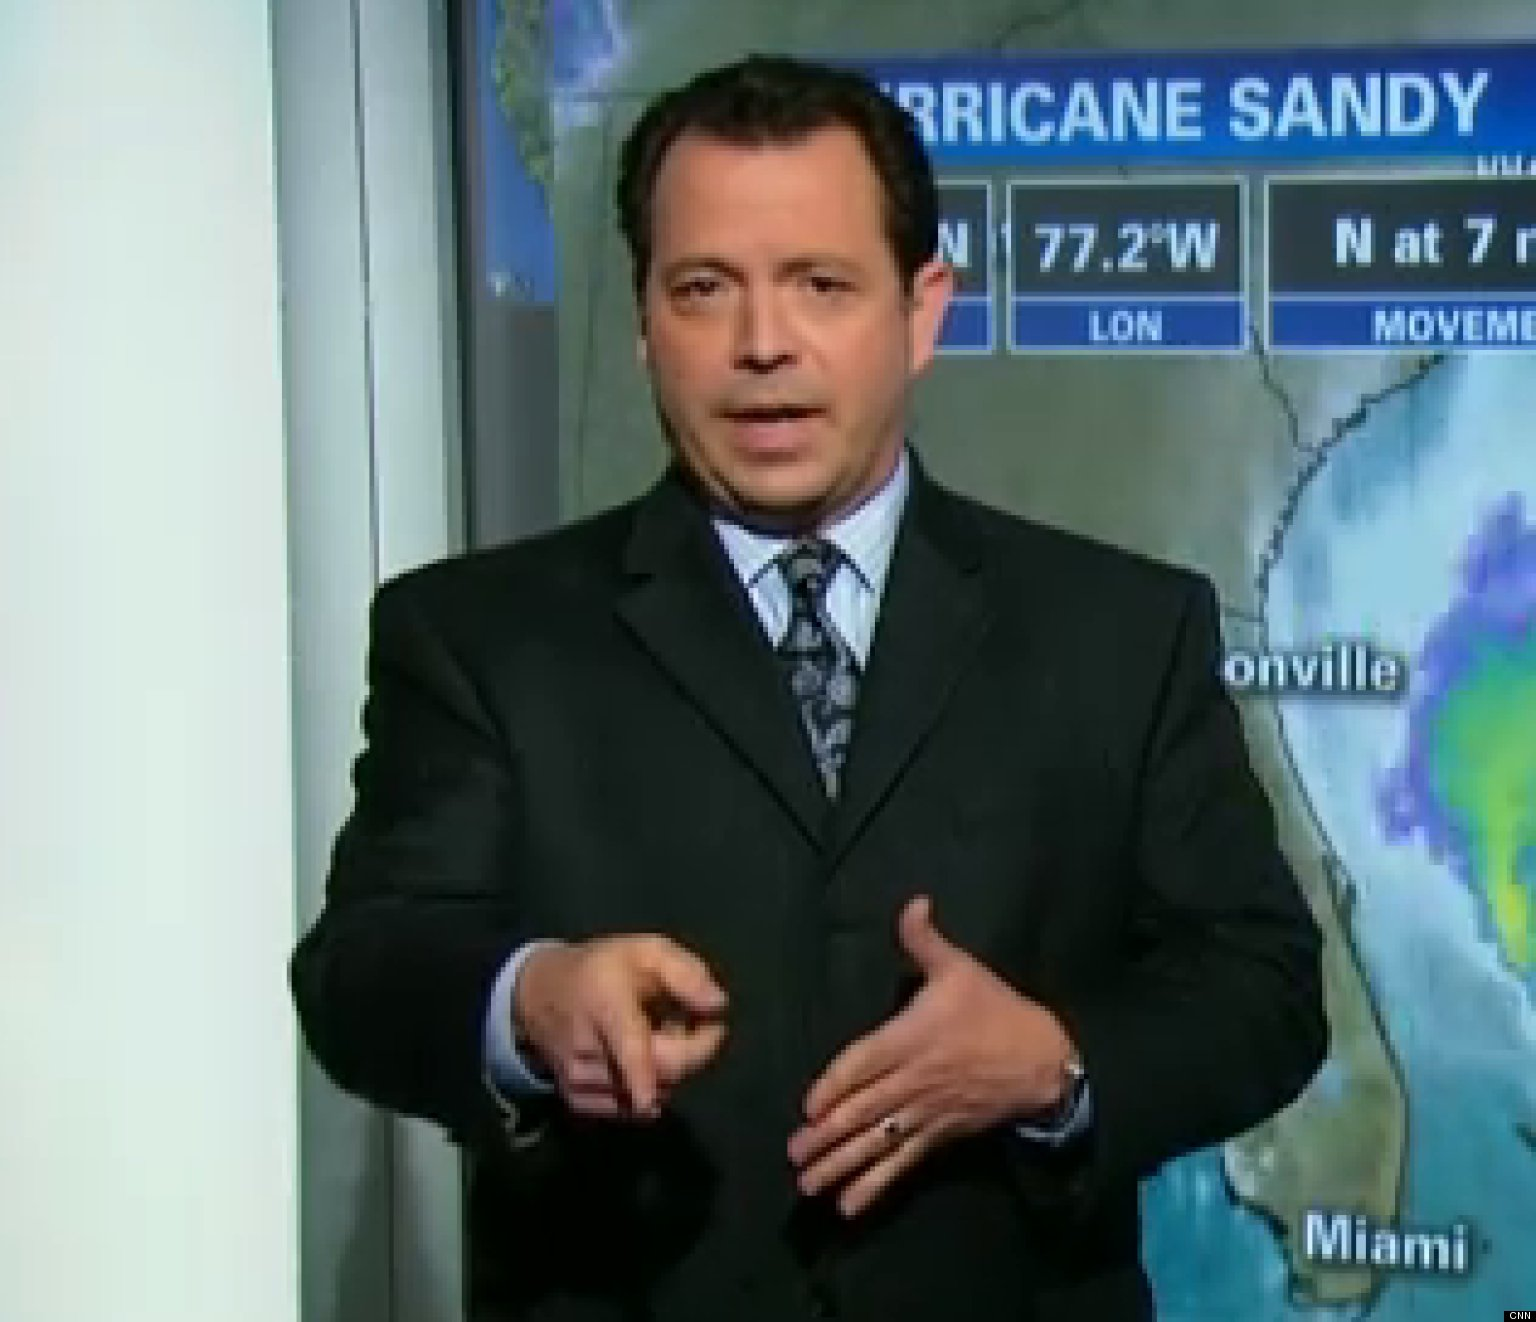 Cnn Breaking News Weather: CNN, Weather Channel Falsely Report NYSE Flooding During